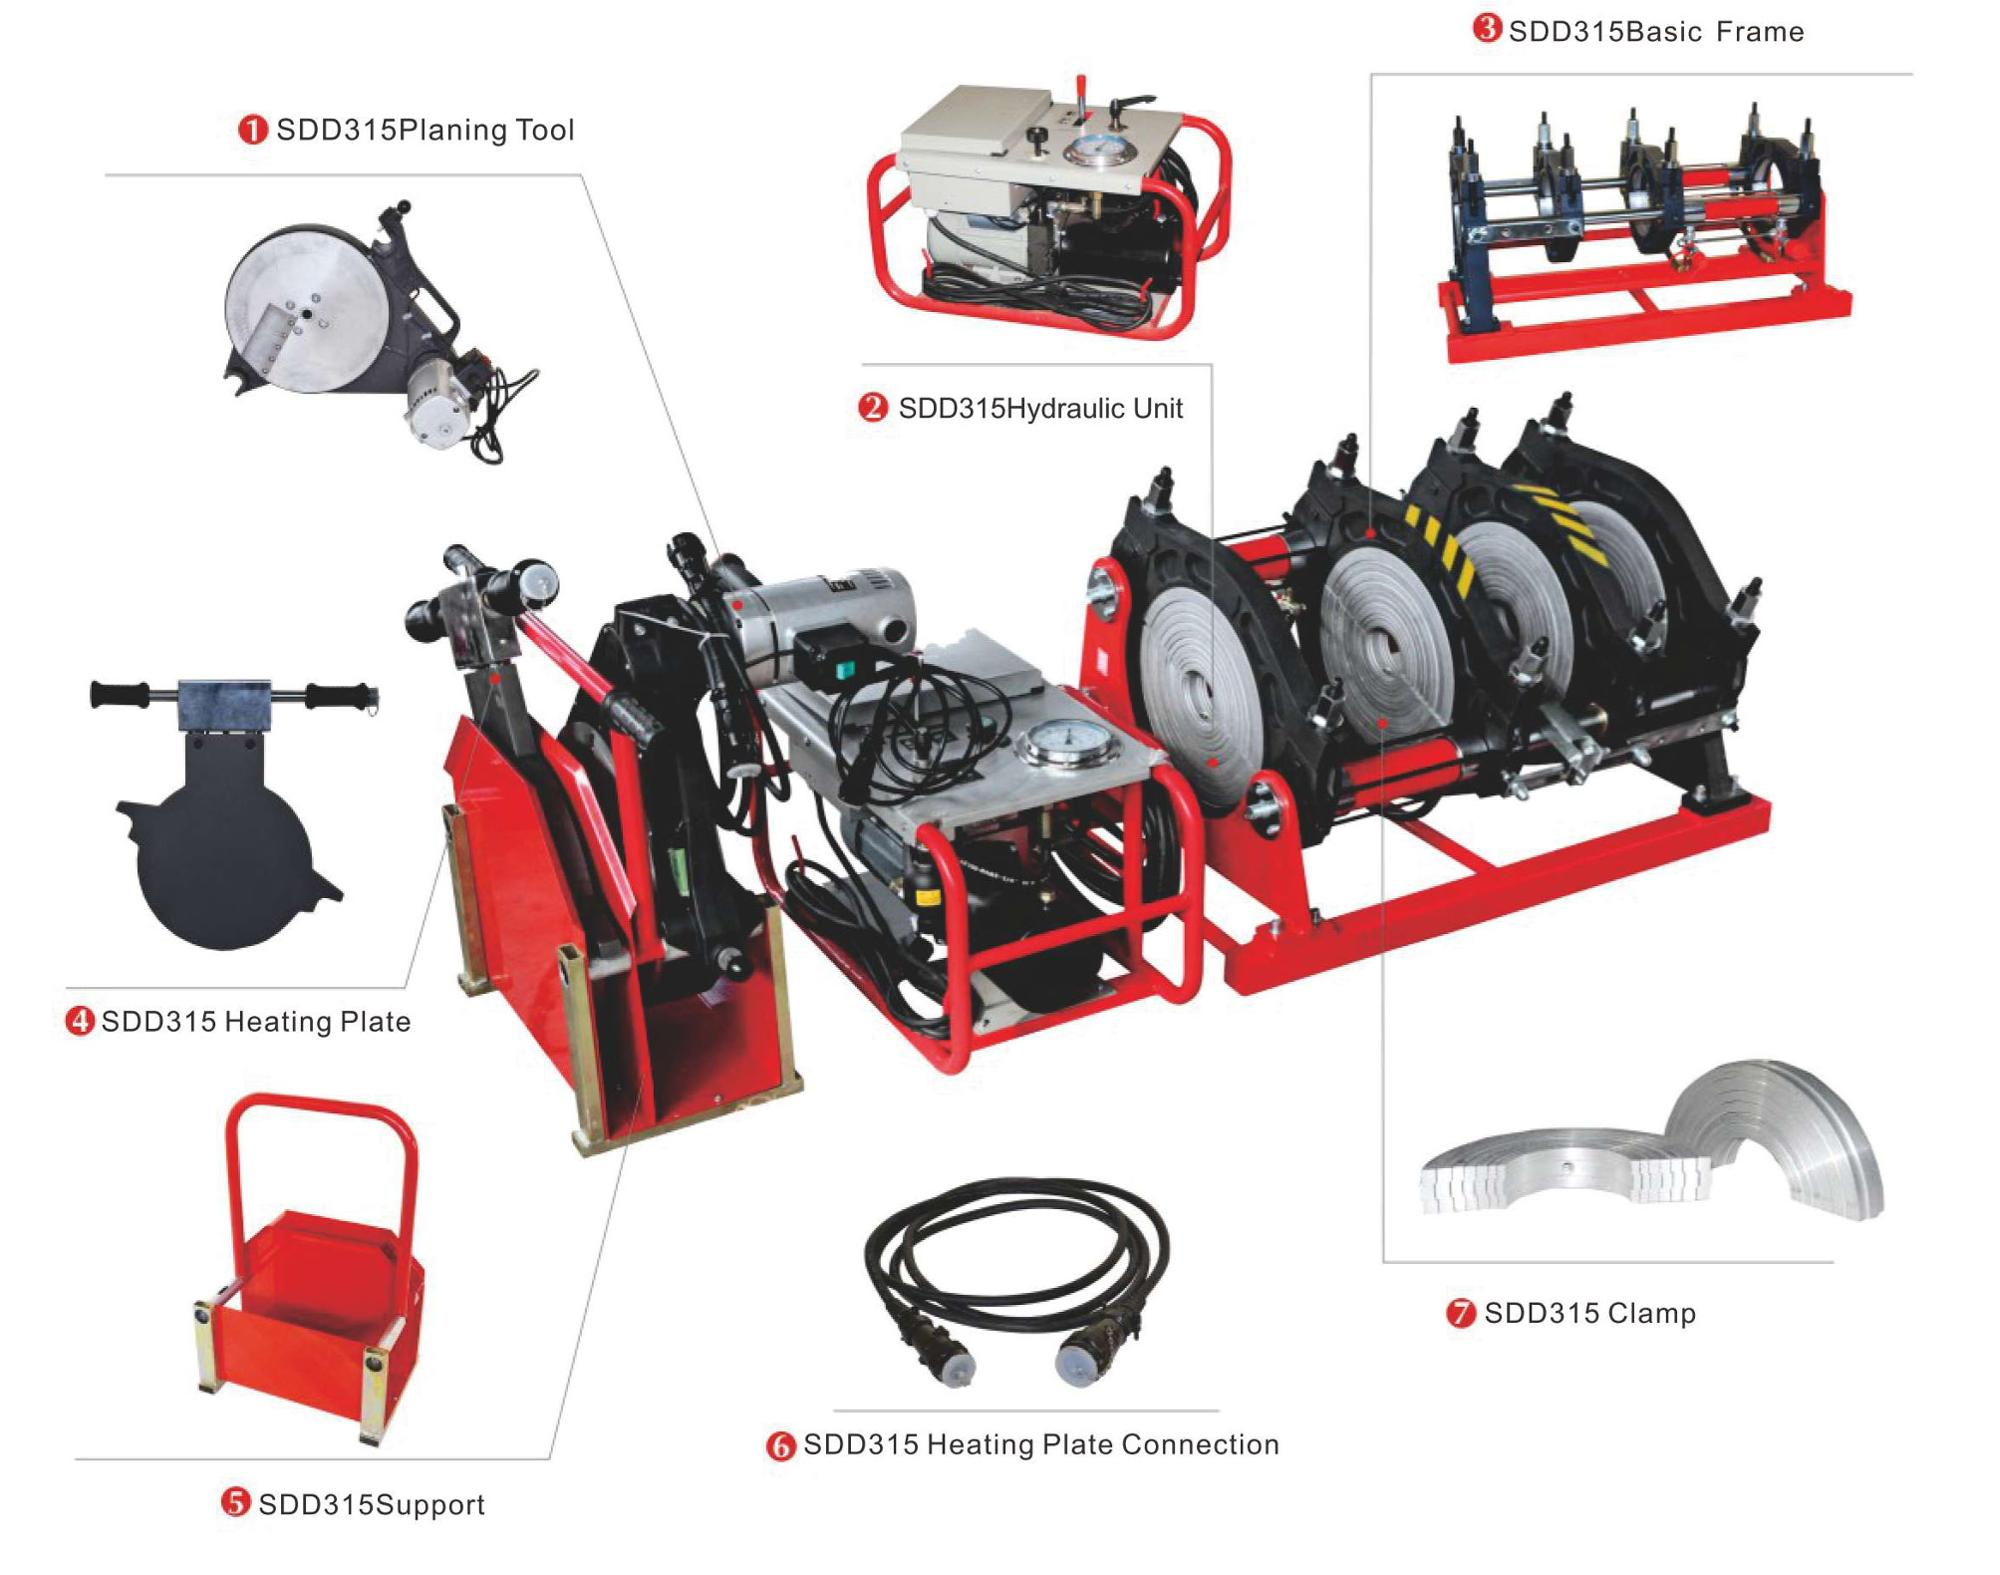 Hydraulic 4 Clamps Hdpe Butt Pipe Fusion Welder Electrofusion Welding Diagram Suitable For Of Plastic Pipes And Or Fittings Made Peppr Pband Pvdf In Worksite Workshop